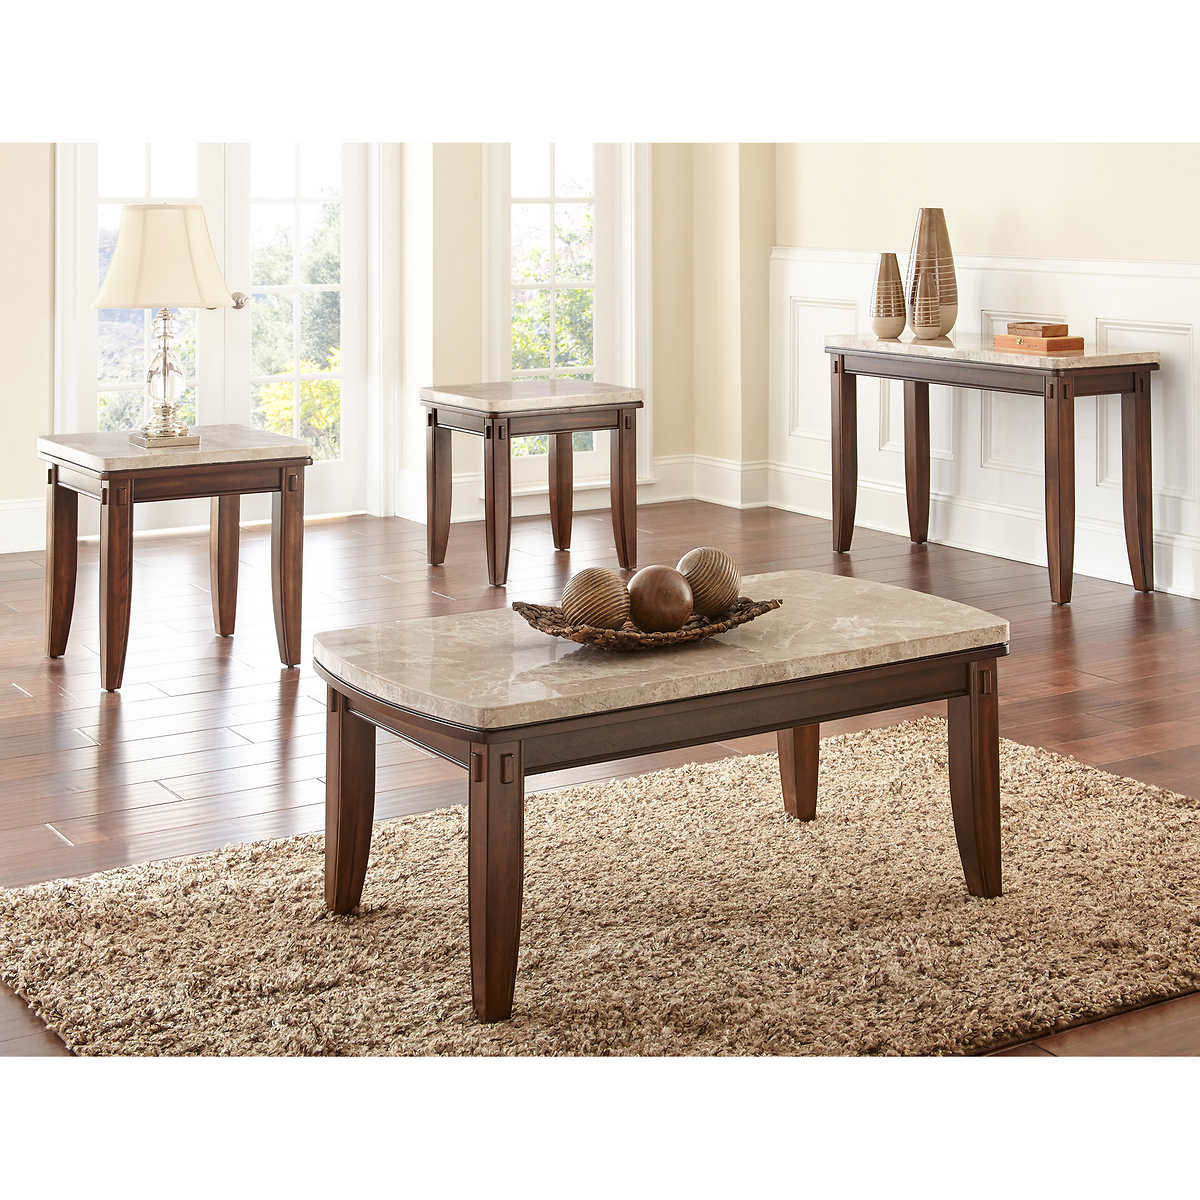 Edgewater Occasional Table Collection - Occasional Tables Costco